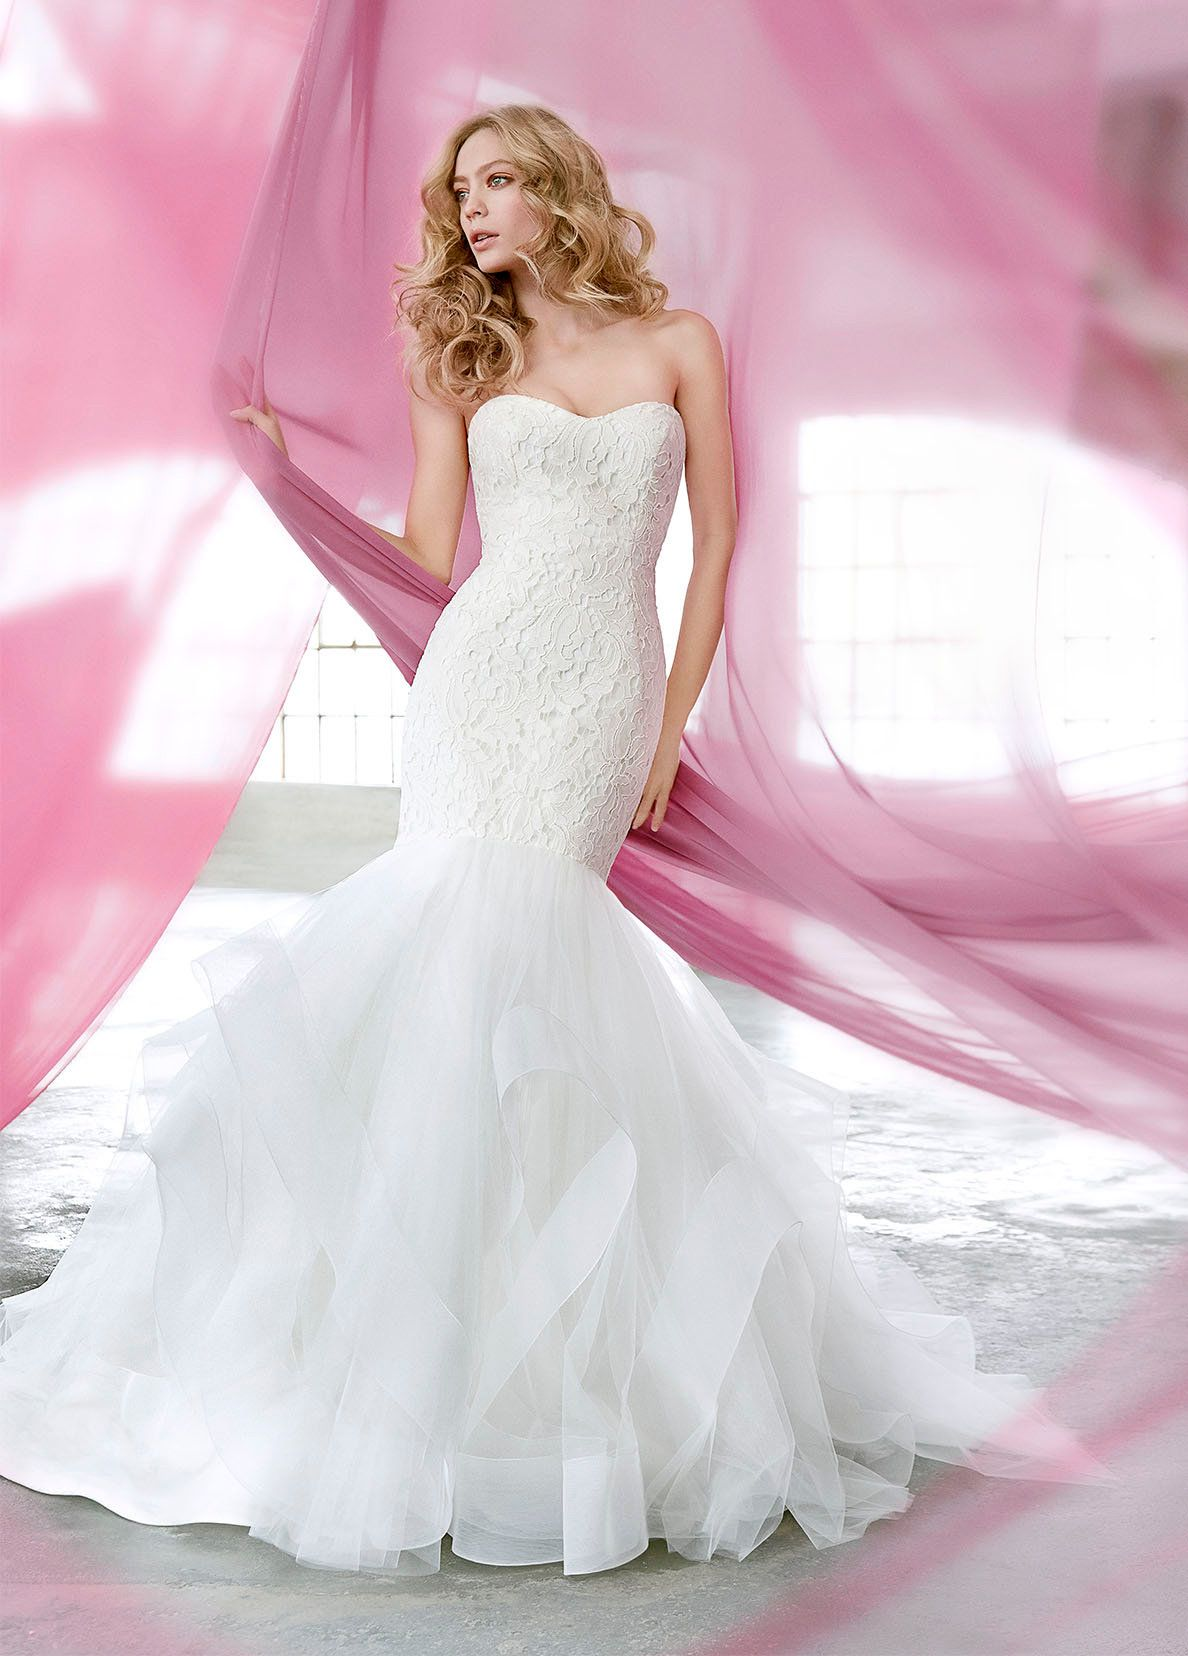 Sexy Mermaid Wedding Dress by BLUSH by Hayley Paige - Image 1 zoomed ...